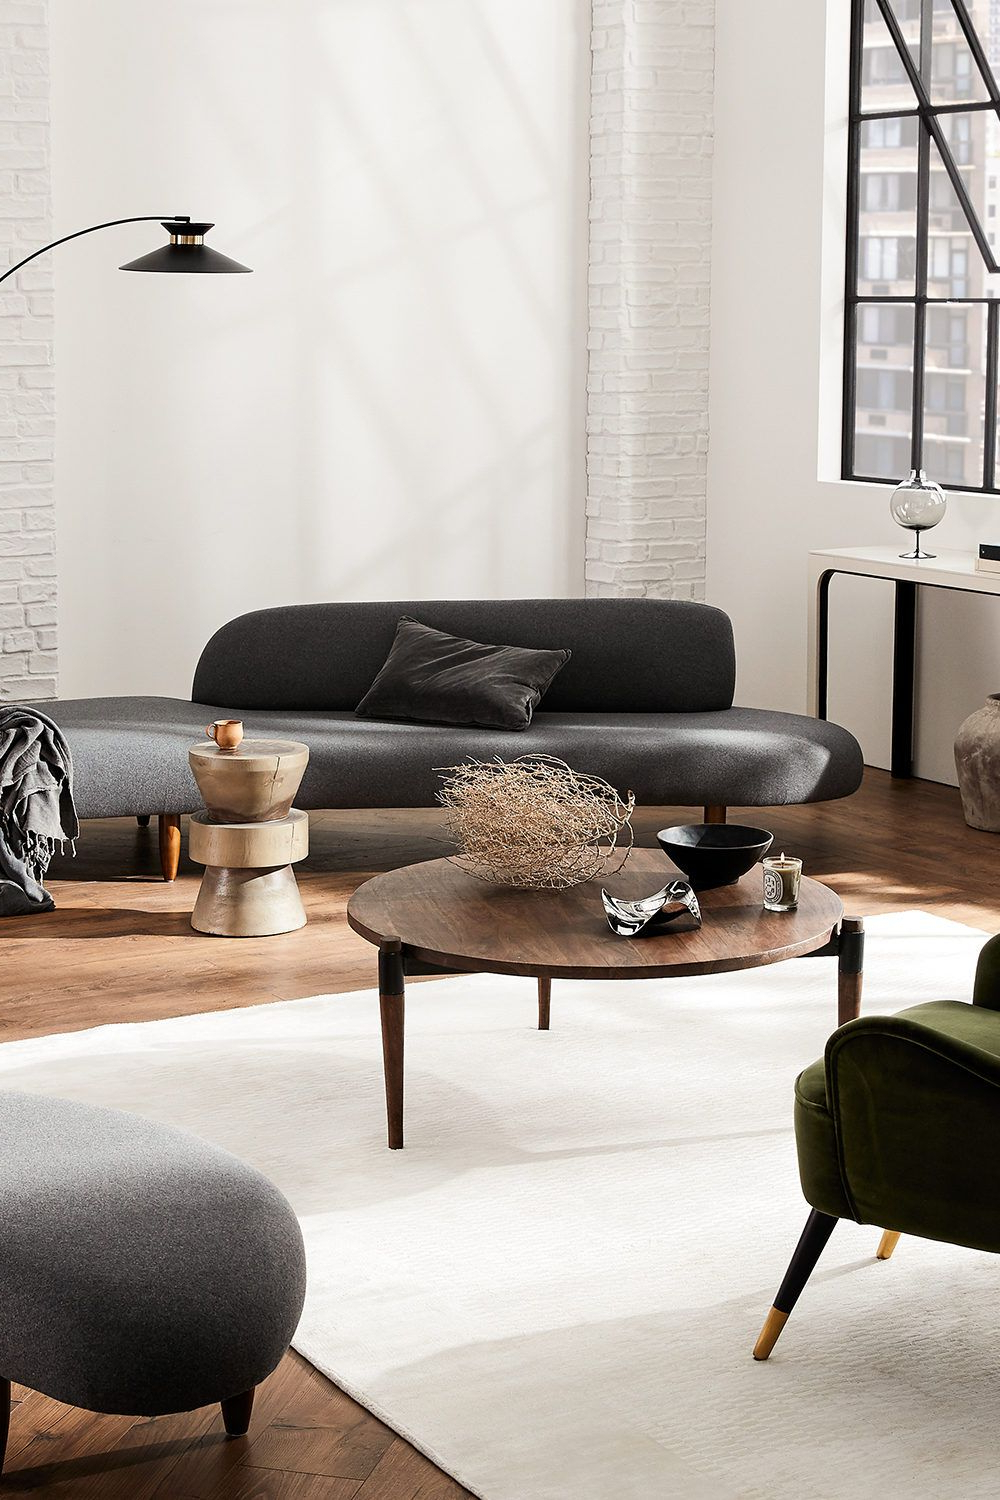 Abbottsmoor Barrel Chair And Ottoman Sets Within Latest Trend Alert: Curved Living Room Furniture (View 7 of 20)